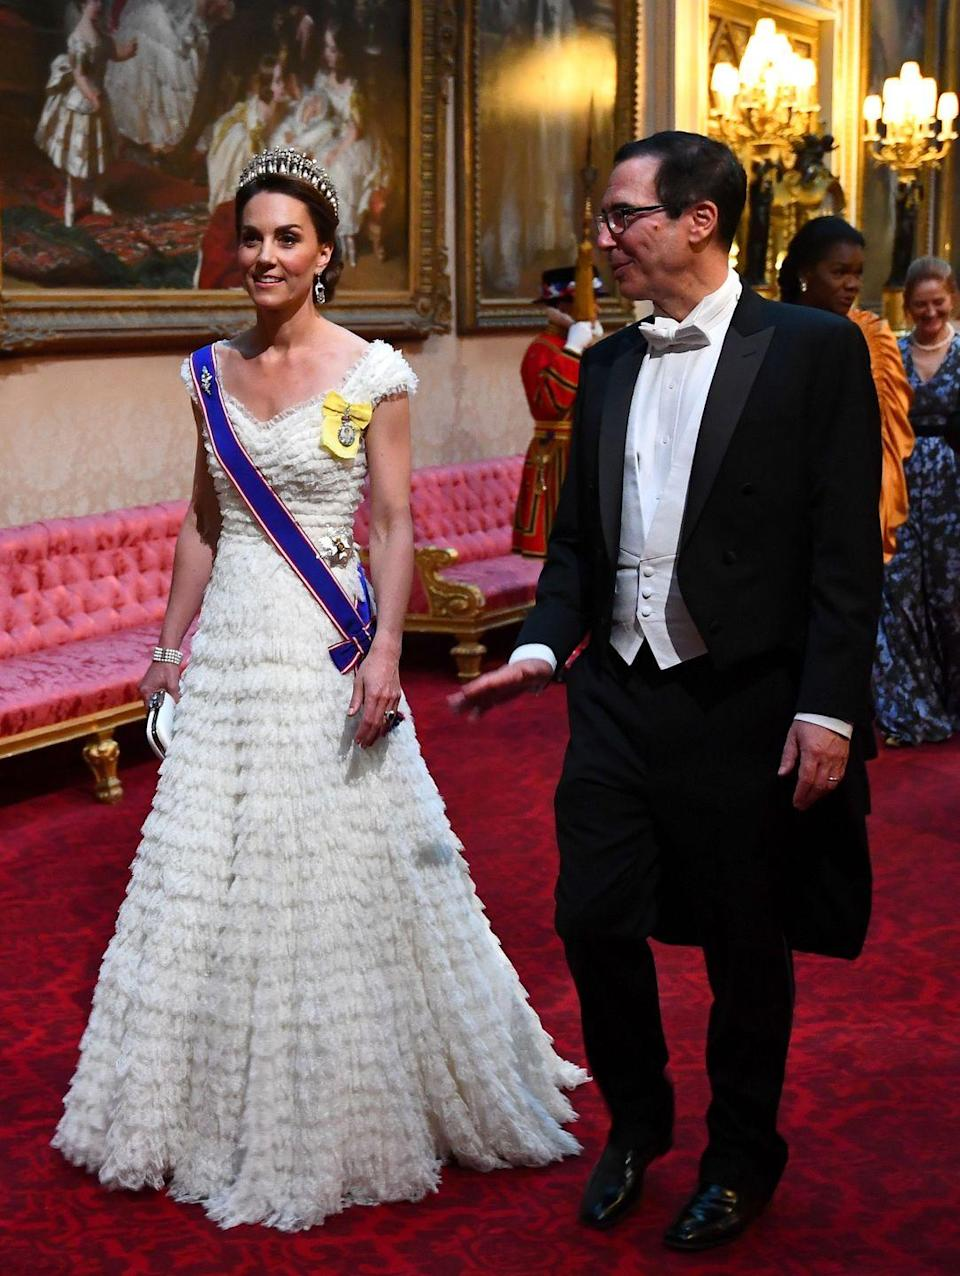 "<p><a href=""https://www.townandcountrymag.com/style/fashion-trends/a27682334/kate-middleton-jewelry-dress-buckingham-palace-state-banquet-donald-trump/"" rel=""nofollow noopener"" target=""_blank"" data-ylk=""slk:Kate wore a tiered Alexander McQueen gown to a state banquet with Donald Trump"" class=""link rapid-noclick-resp"">Kate wore a tiered Alexander McQueen gown to a state banquet with Donald Trump</a>. She paired the dress with the Lover's Knot Tiara, and the Queen Mother's sapphire and diamond fringe earrings.</p>"